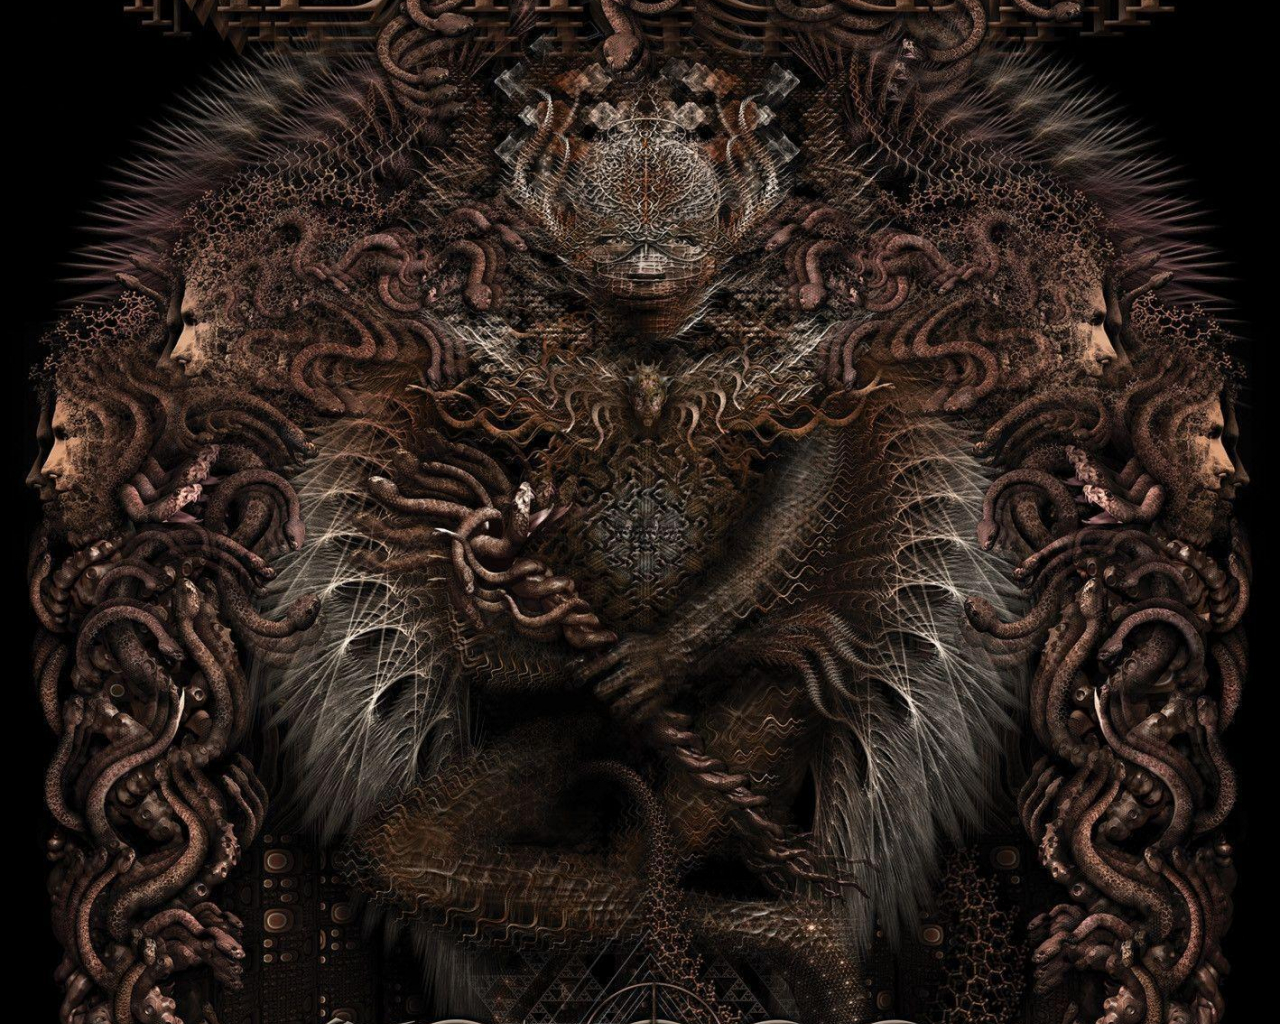 Free Download Meshuggah Wallpapers 1418x1418 For Your